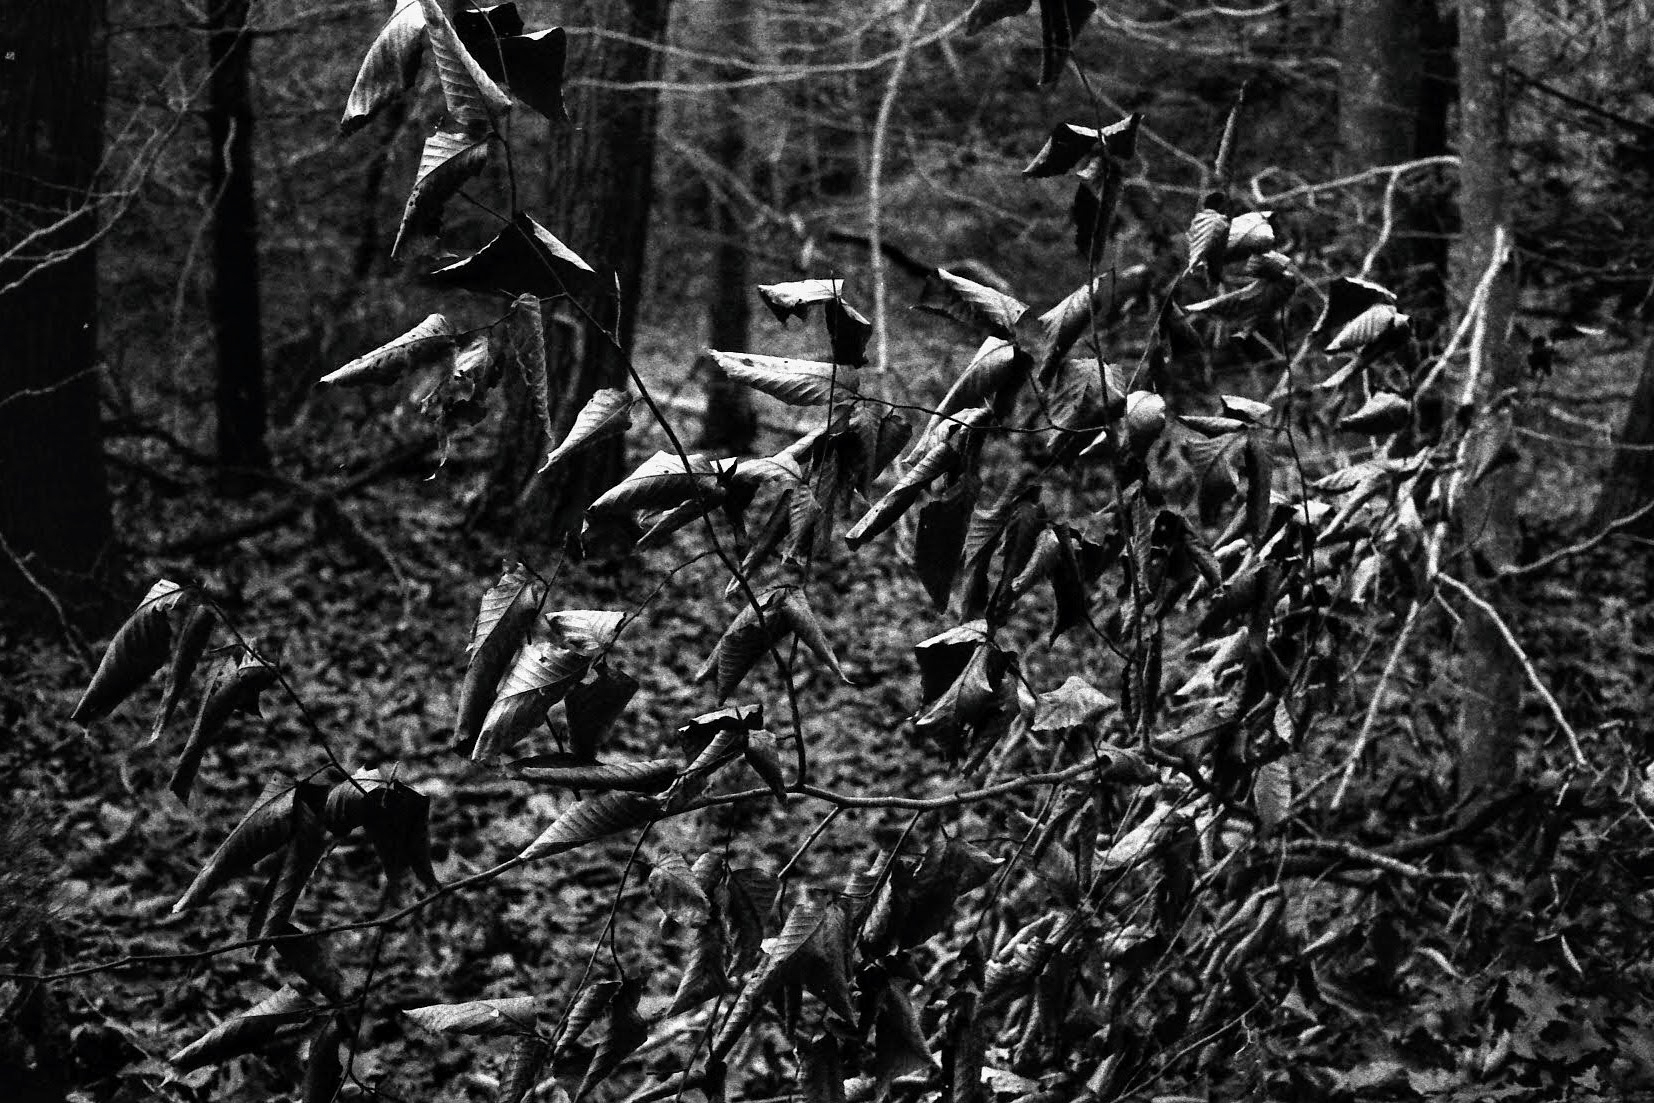 5 Frames... From a walk around Cape Pond, Massachusetts on Kodak Tri-X 400 (35mm Format / EI 400 / Yashica Electro 35 GSN) - by Bob Harrison